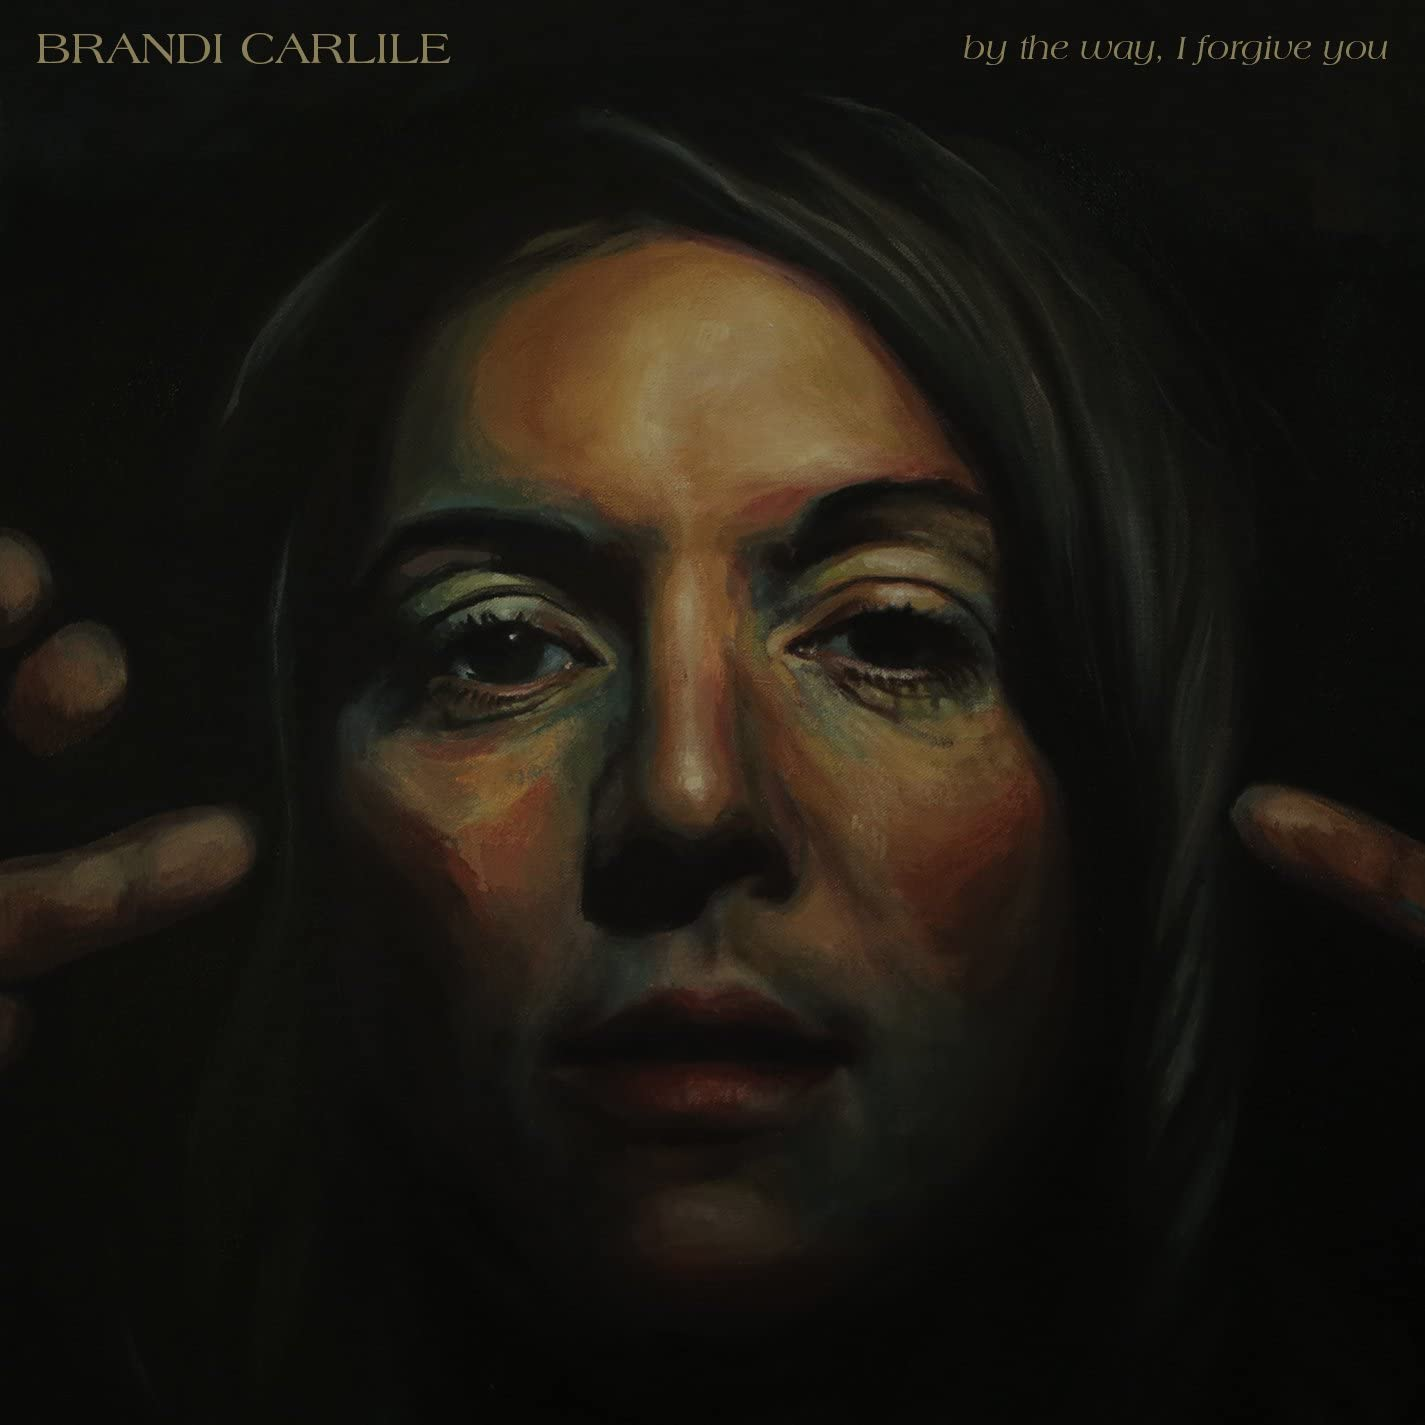 Brandi Carlile's By the Way, I Forgive You